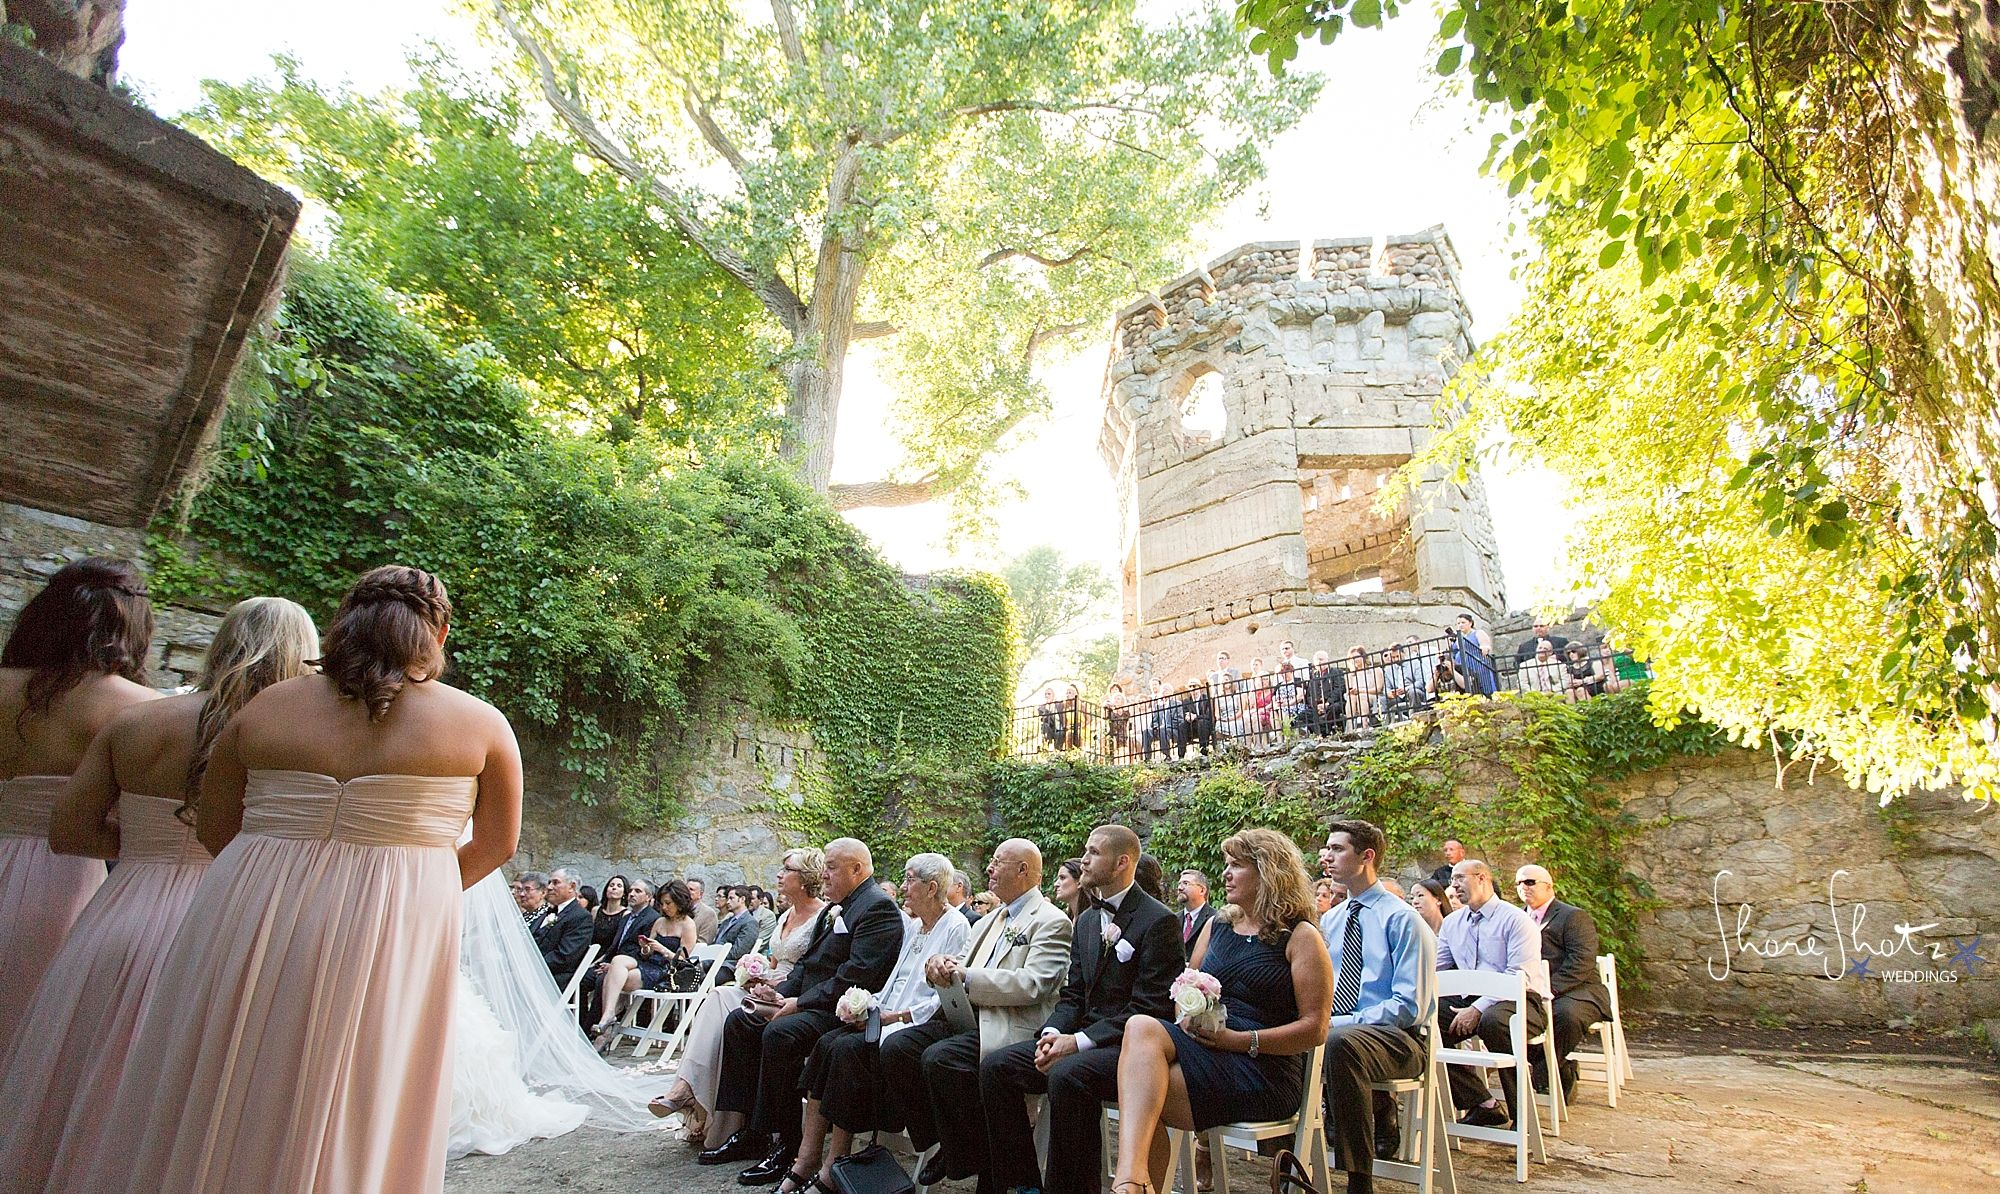 Outdoor Ceremony At The Barn 3 Daryl Tony Married Barn At Gibbet Hill Top Of Th Massachusetts Wedding Photographer Massachusetts Wedding Castle Wedding